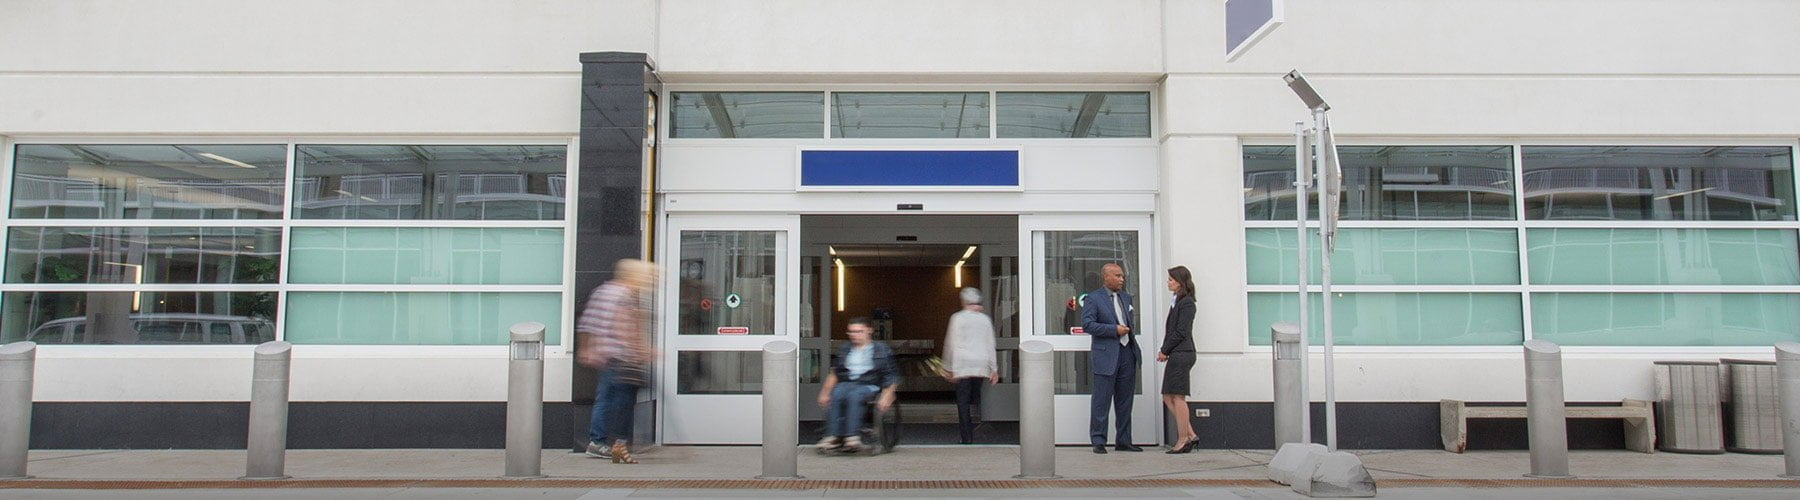 How To Select An Automatic Door And Maintenance Programs